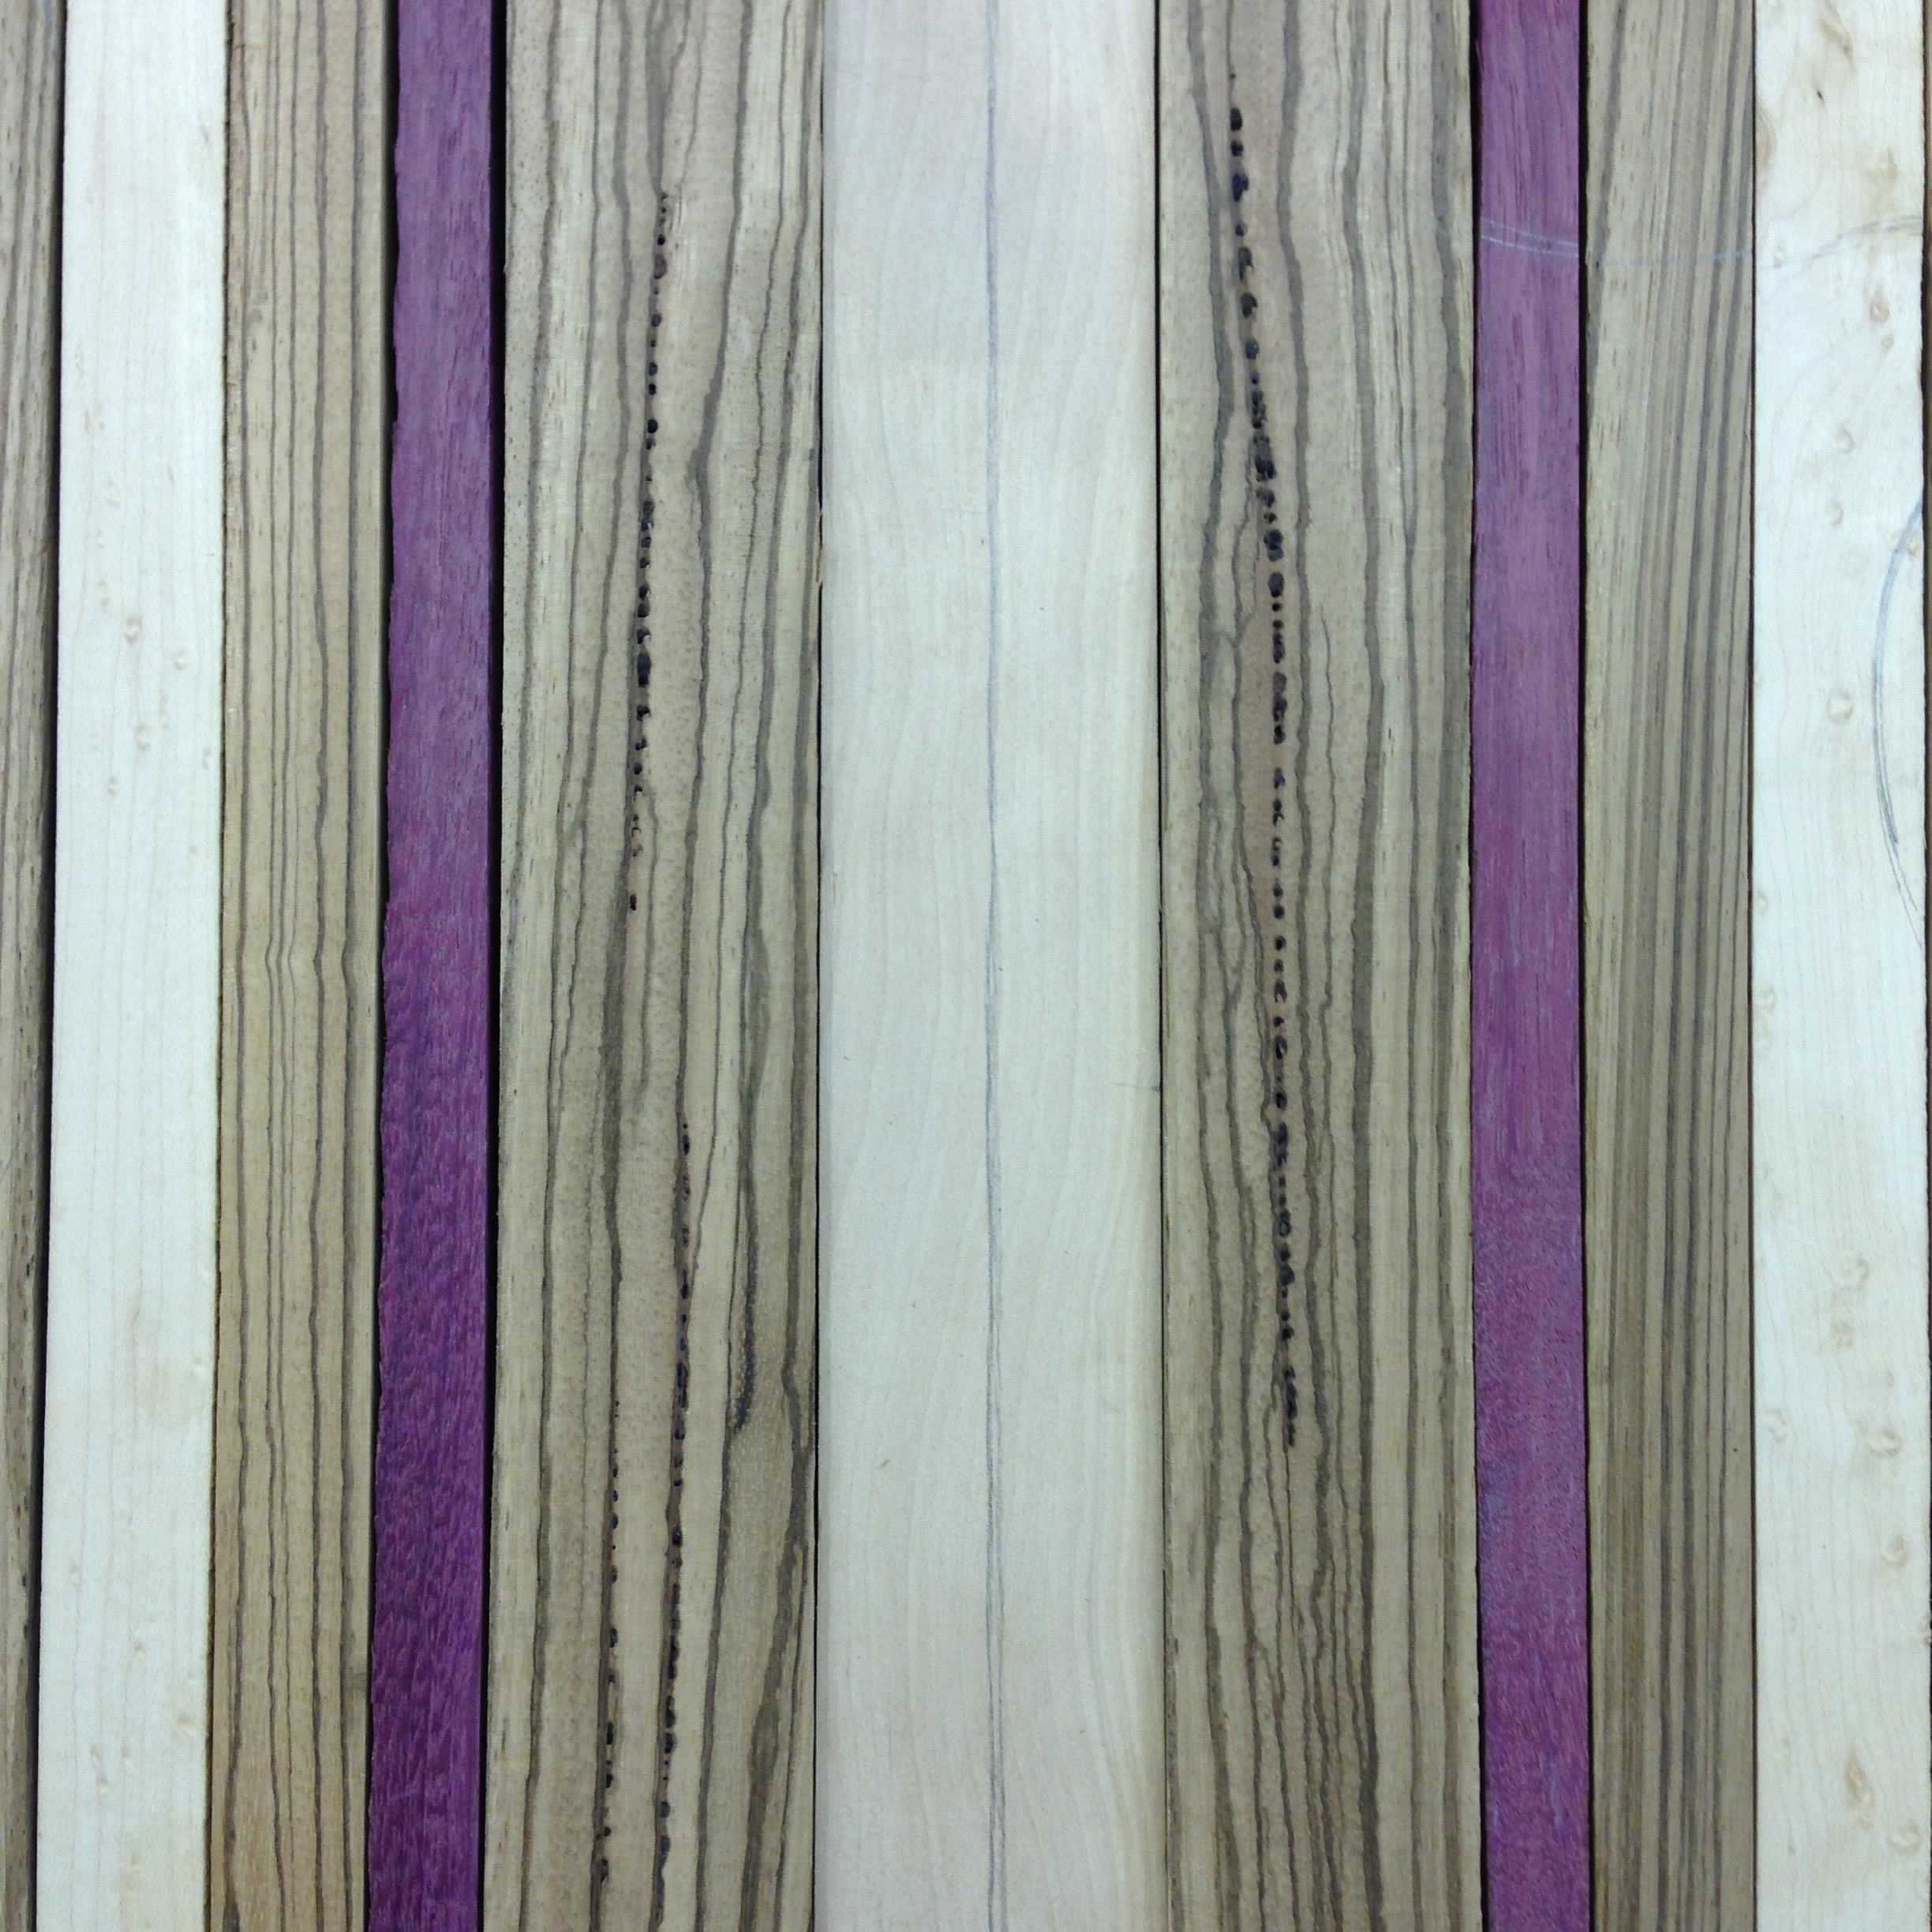 Some birdseye maple, purple heart and zebrawood glued together for a funky top.